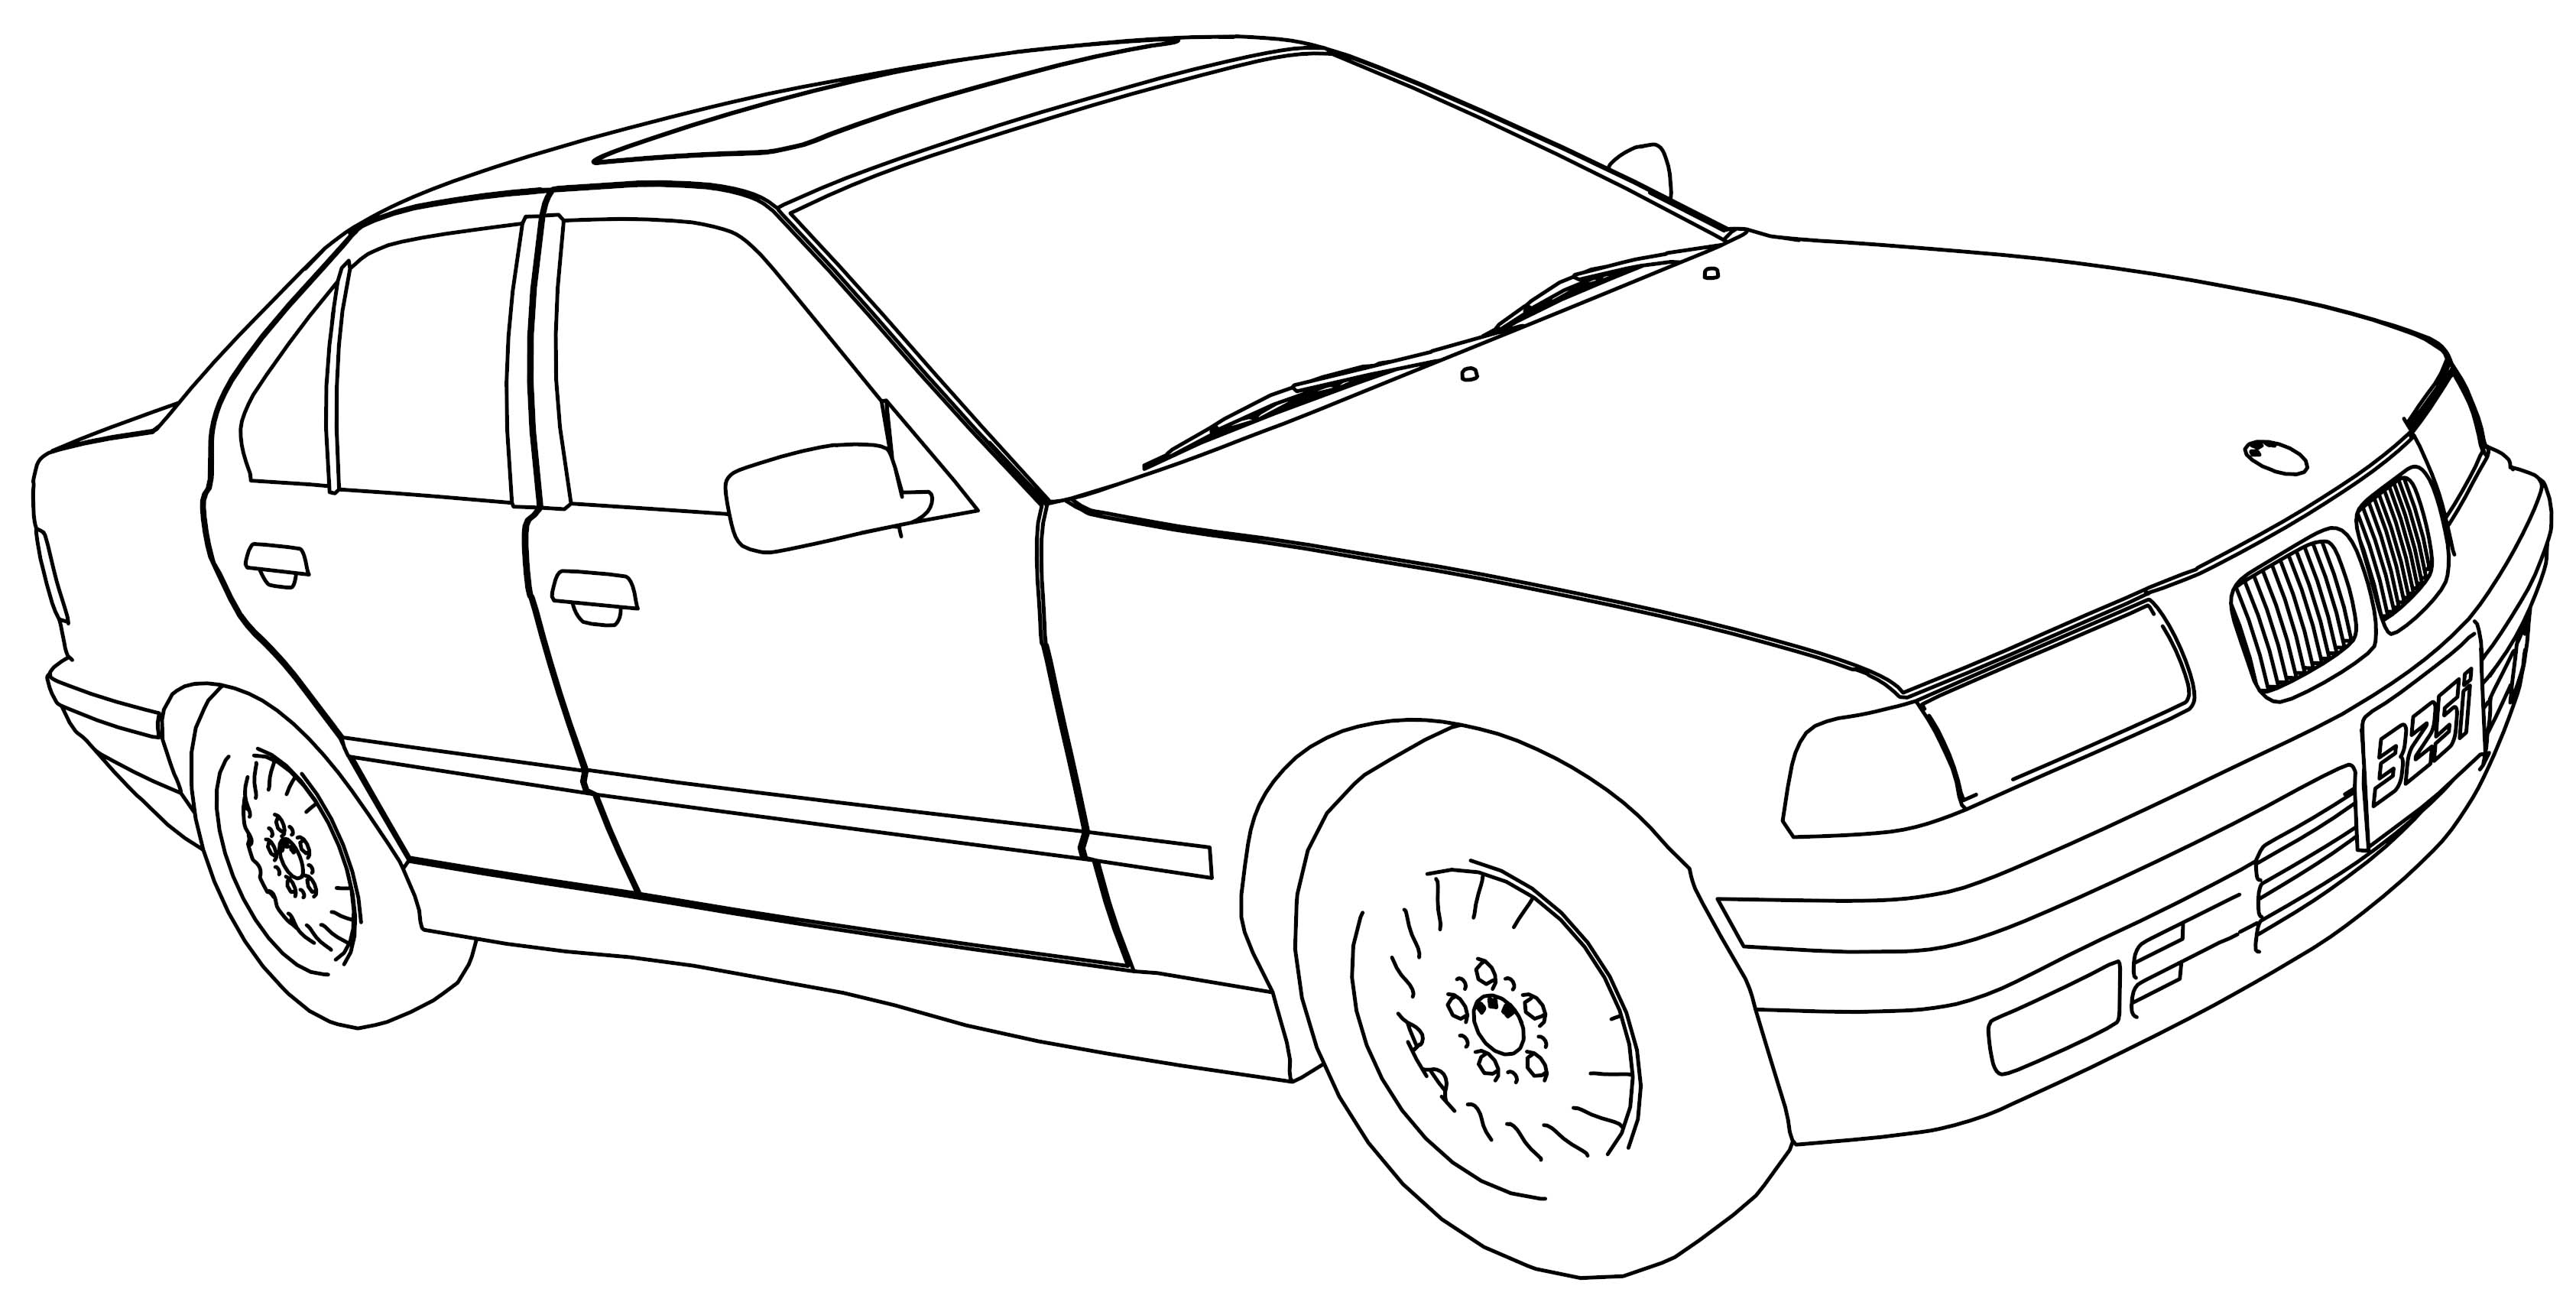 Bmw 325i Model Car Coloring Page